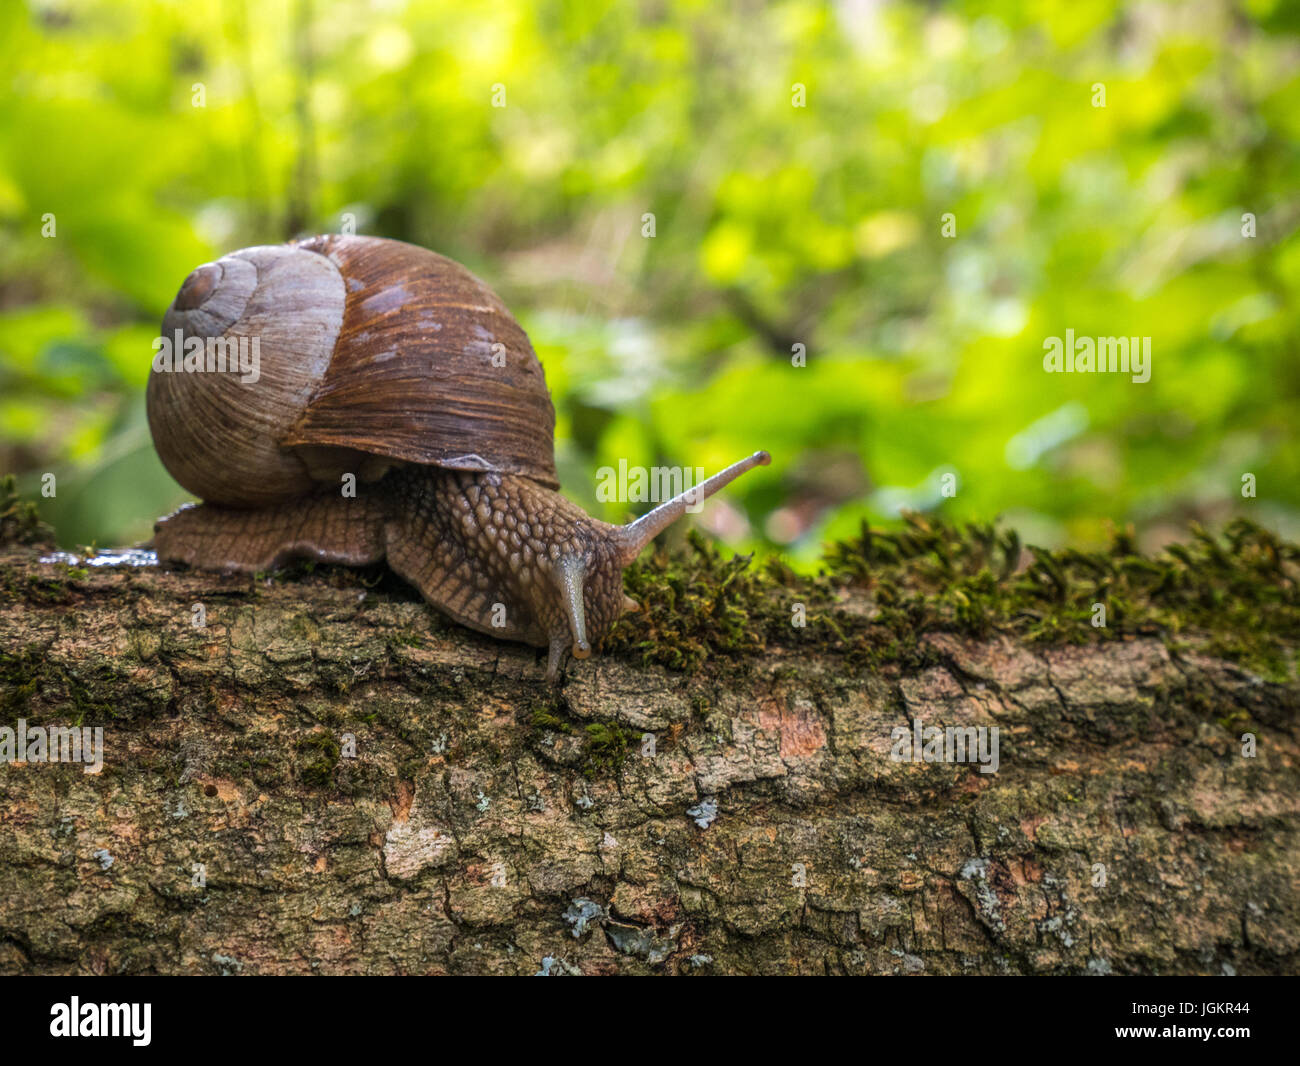 Roman / Edible Snail on a tree in the woods Stock Photo